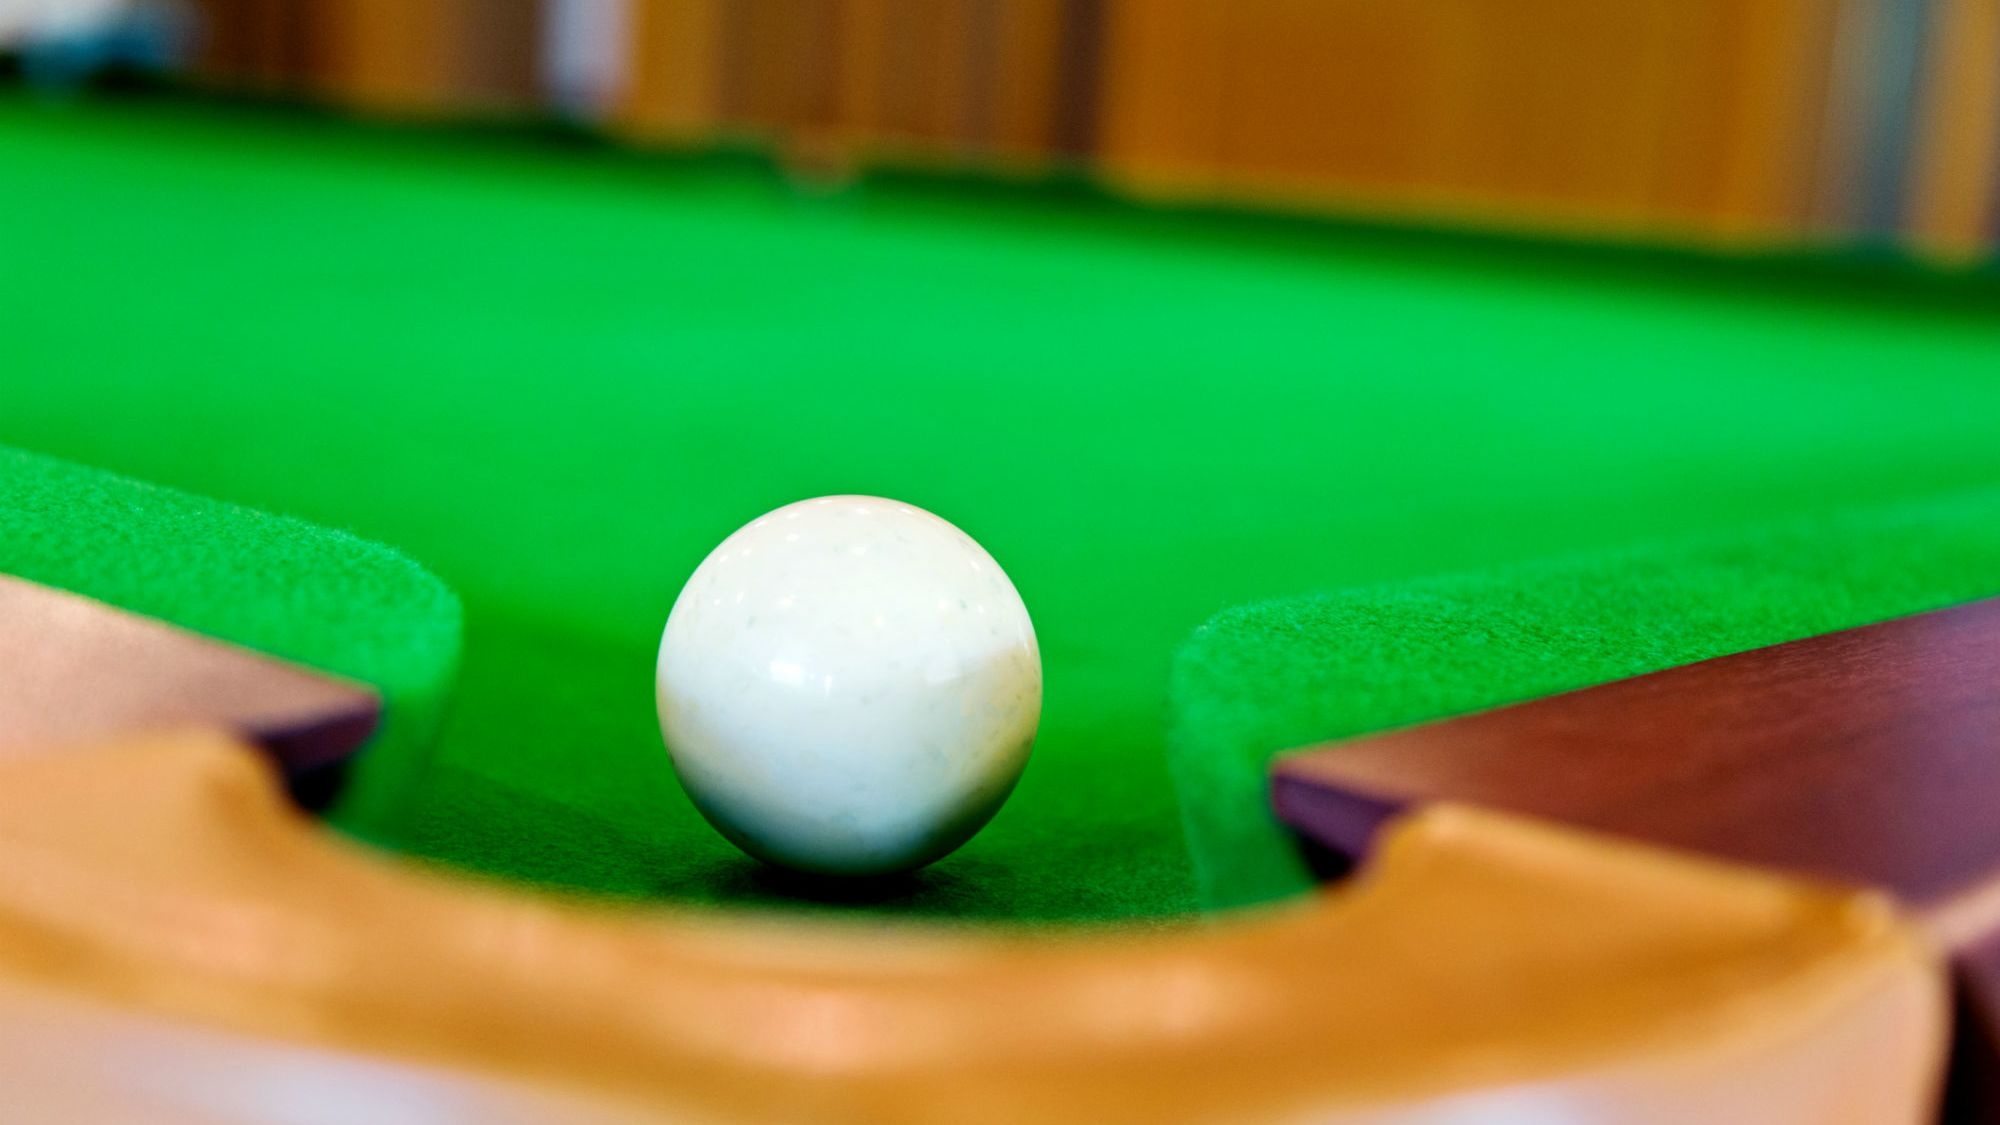 Aramith Green Dot Weighted and Magnetic Pool//Billiard Cue Ball Coin-Op Tables